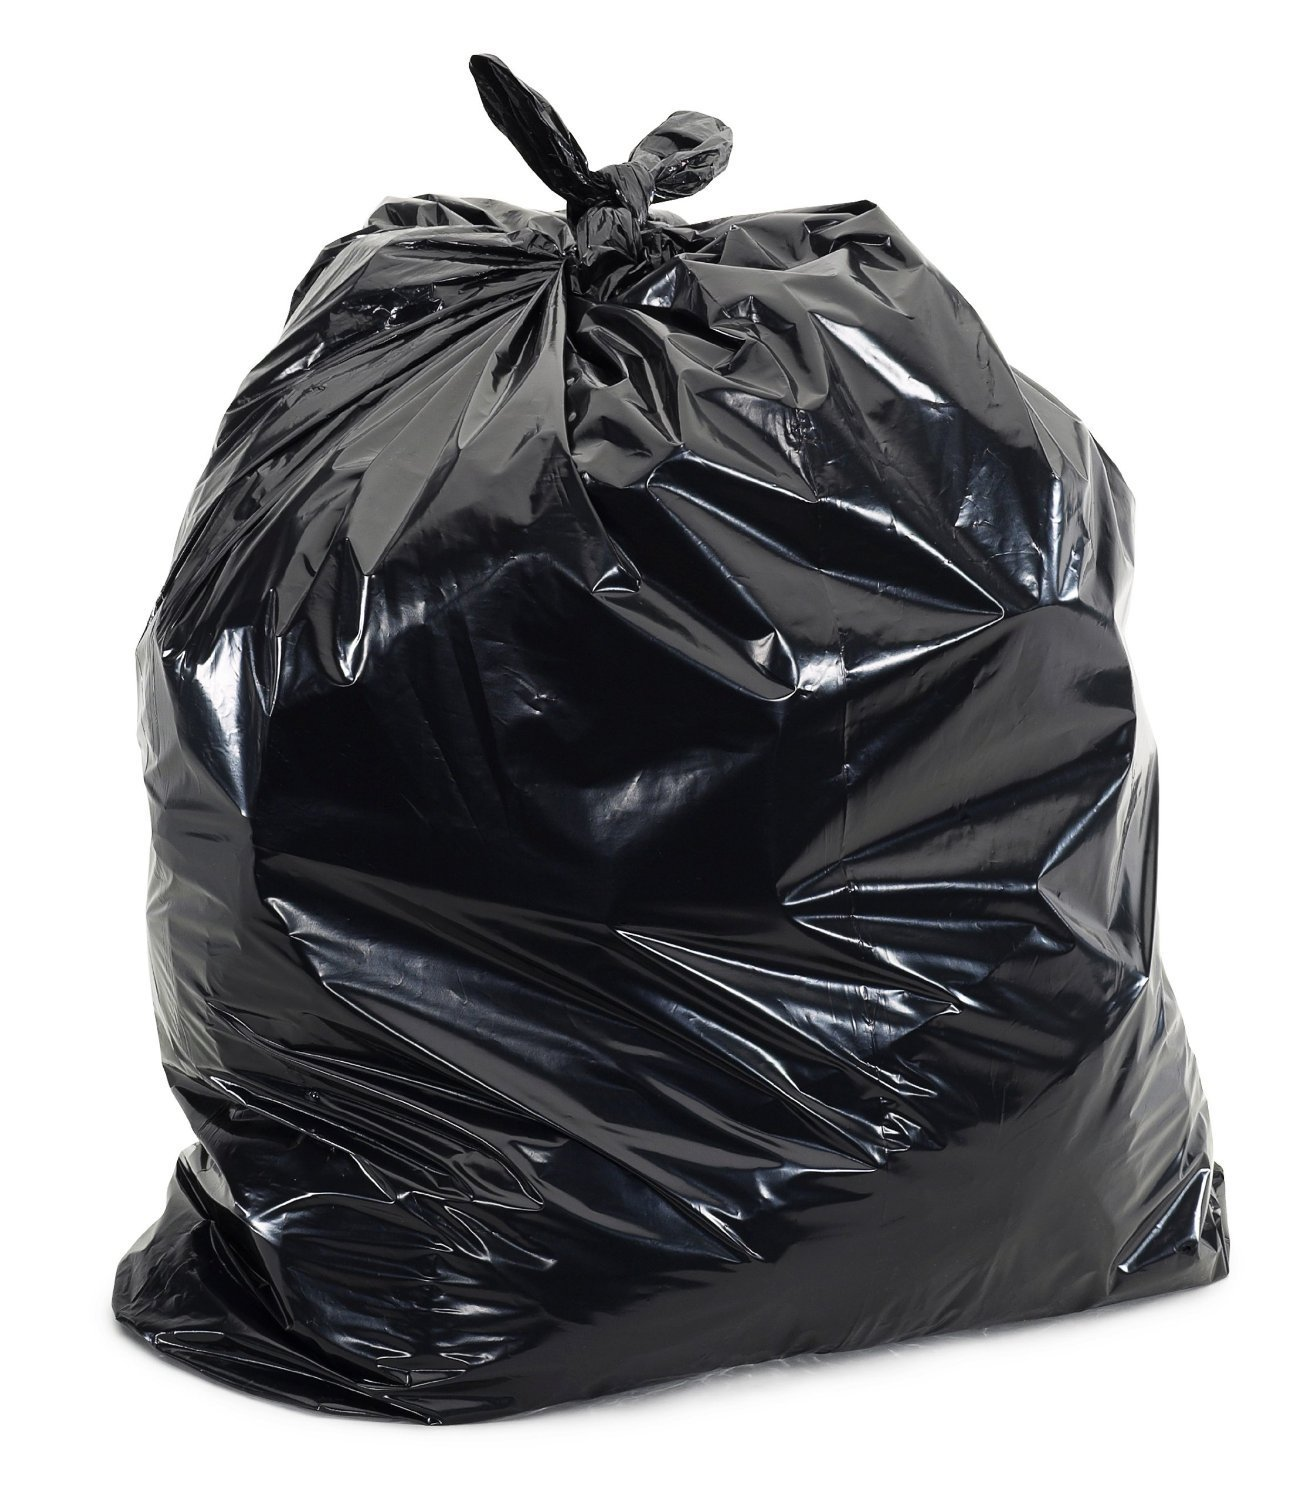 Black Plastic Trash Bags